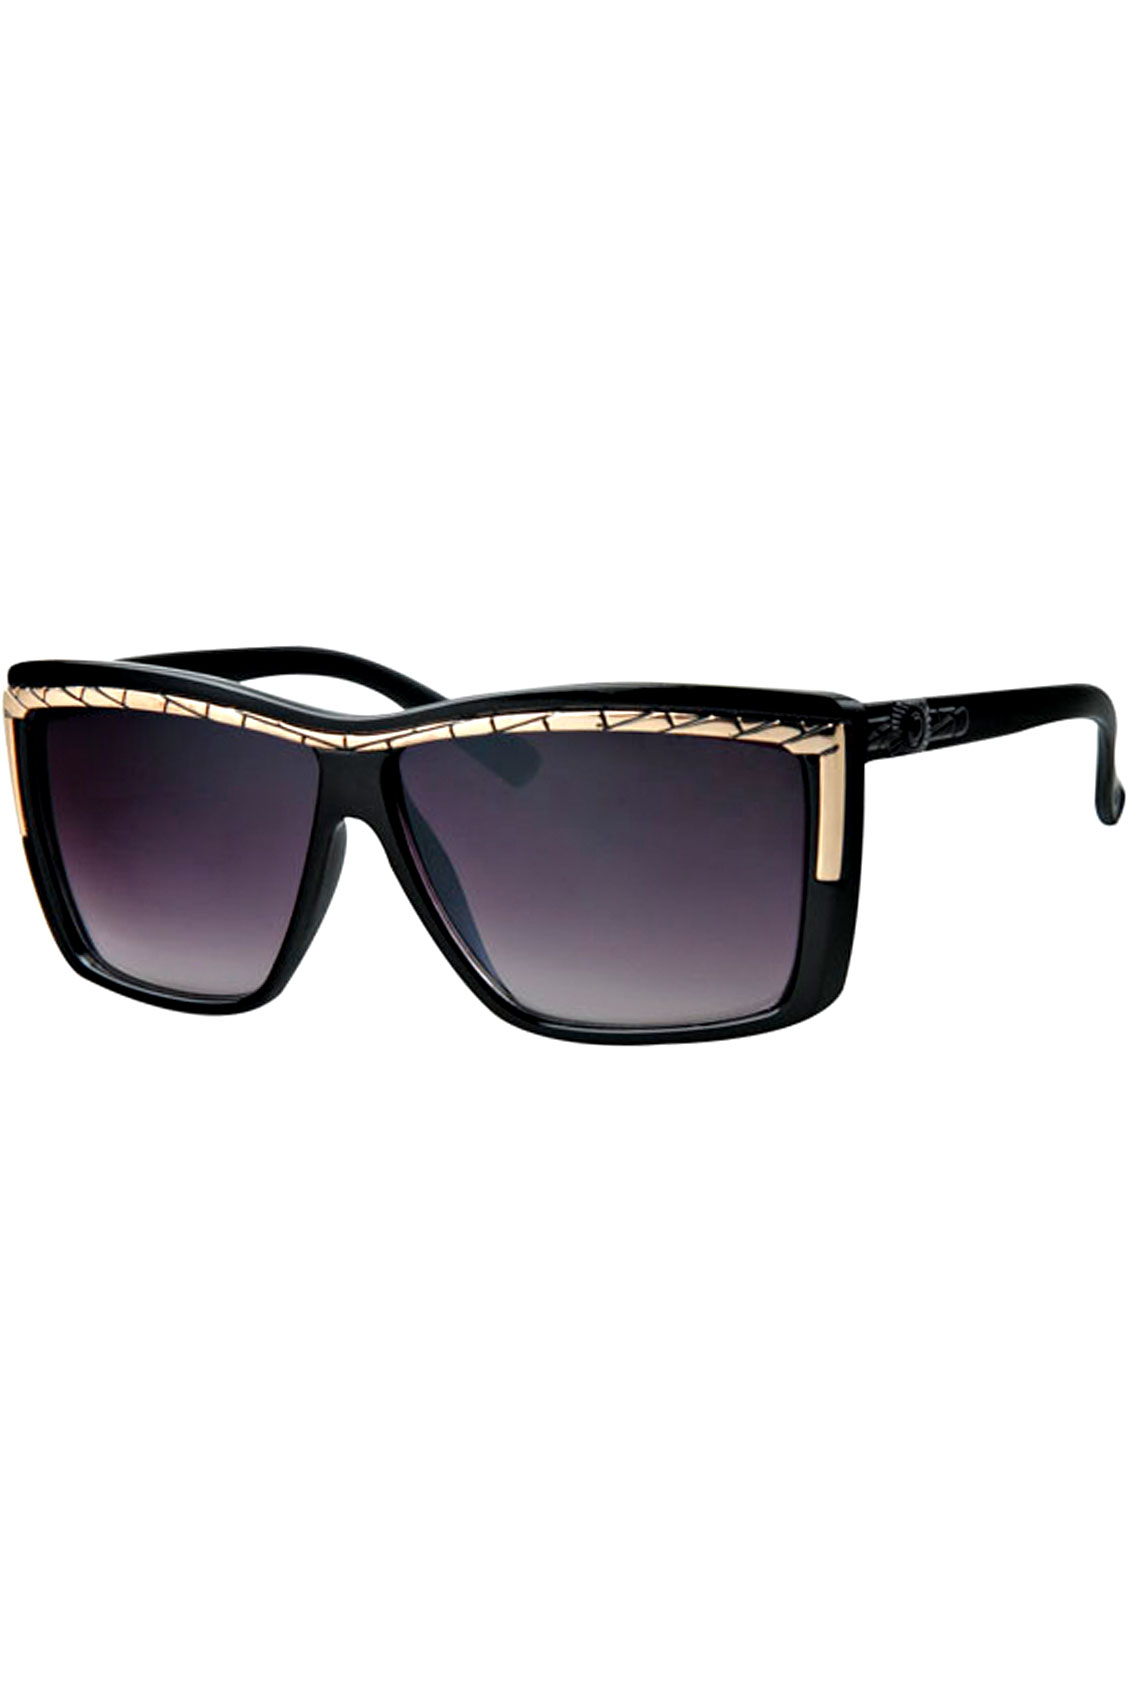 ASOS DESIGN aviator sunglasses in gold metal with mesh metal brow bar detail. $ ASOS DESIGN aviator sunglasses in black with smoke flash. $ ASOS DESIGN Aviator Sunglasses In Black Metal With Smoke Lens. $ AJ Morgan square aviator sunglasses in silver/blue. $